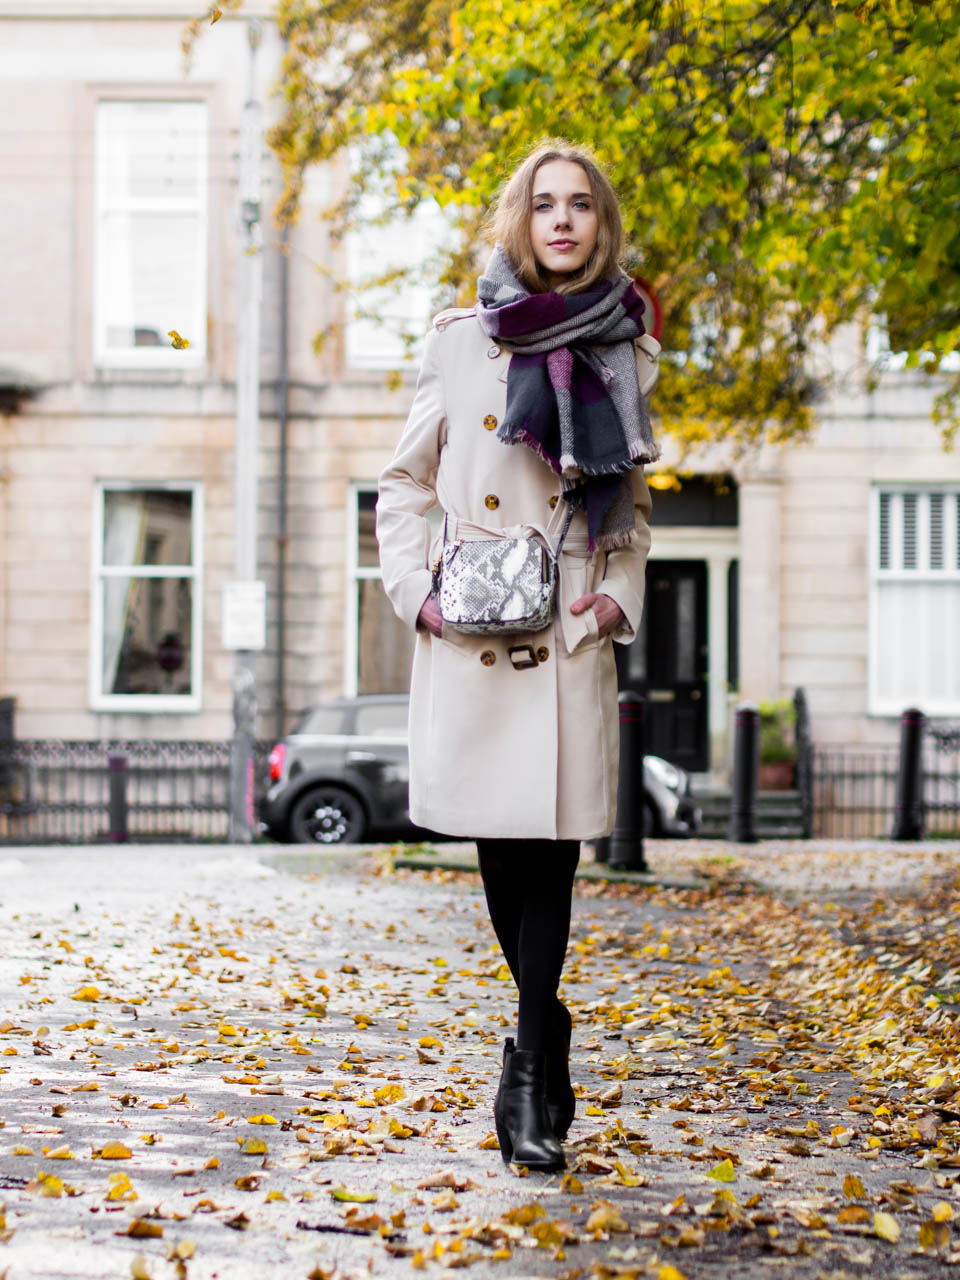 Autumn outfit jumper dress and trench coat - Syyasasu neulemekon ja trenssitakin kanssa